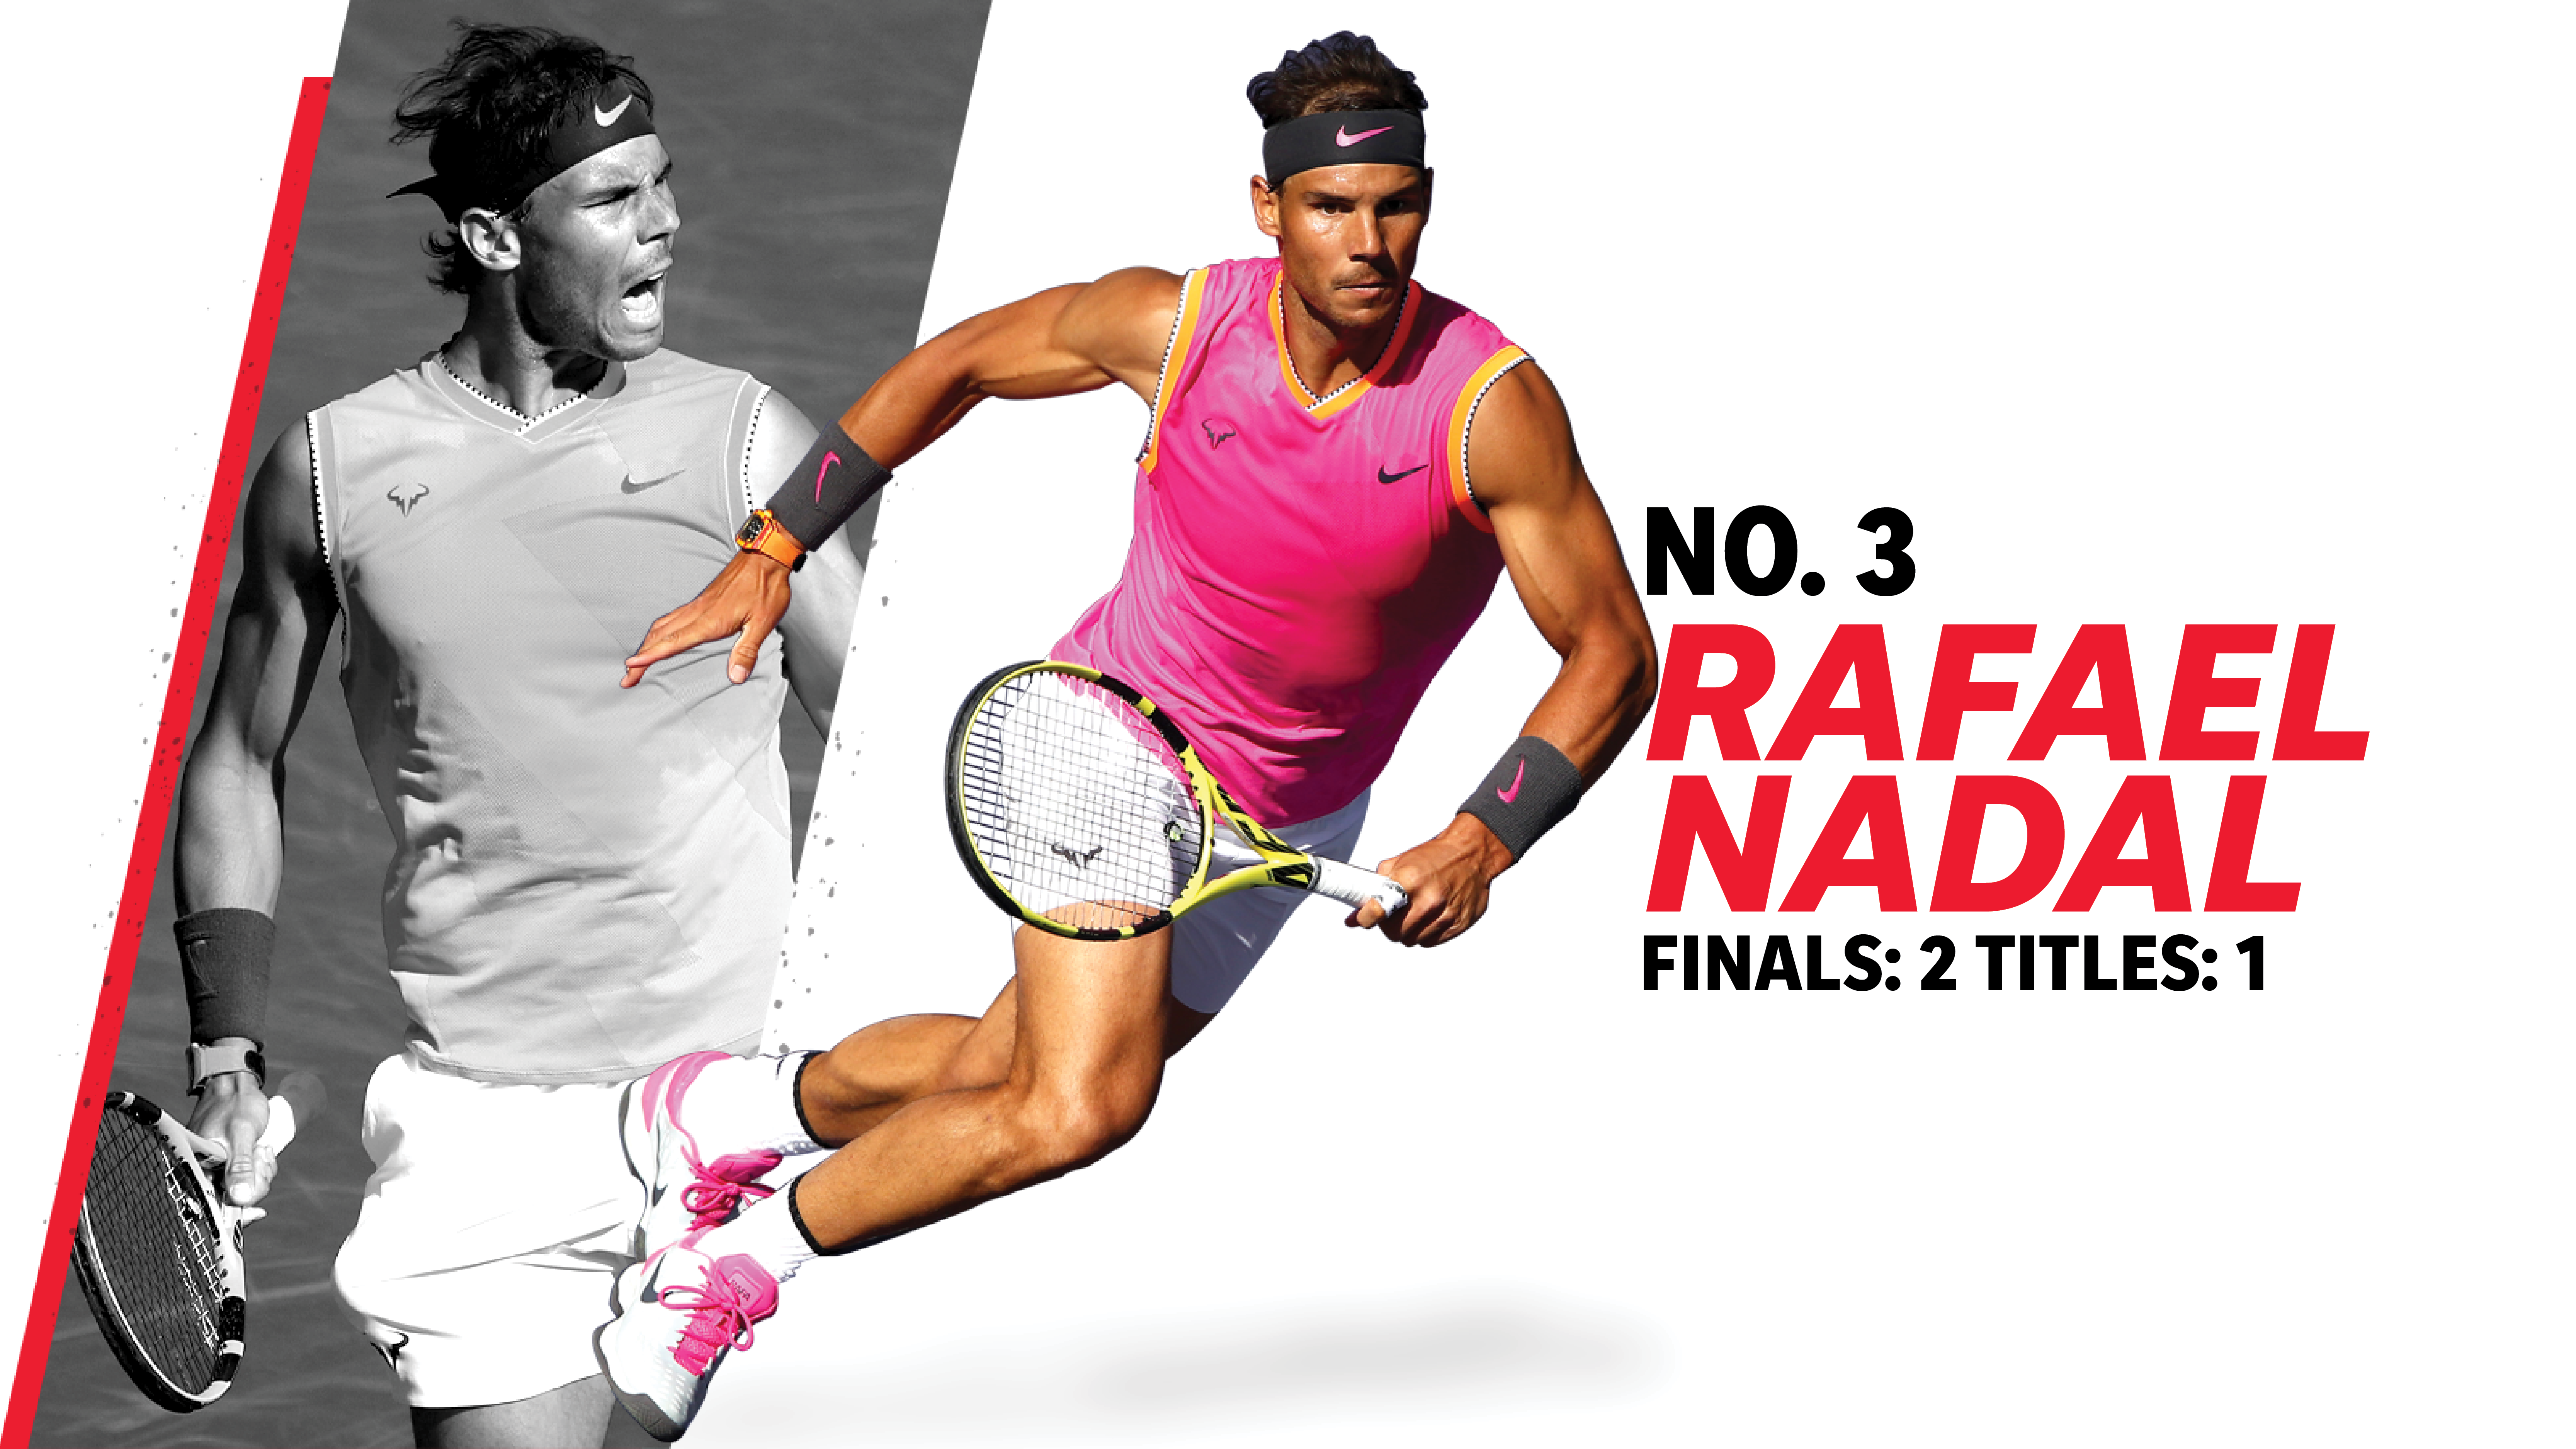 3. Rafael Nadal (finals: 2, titles: 1)